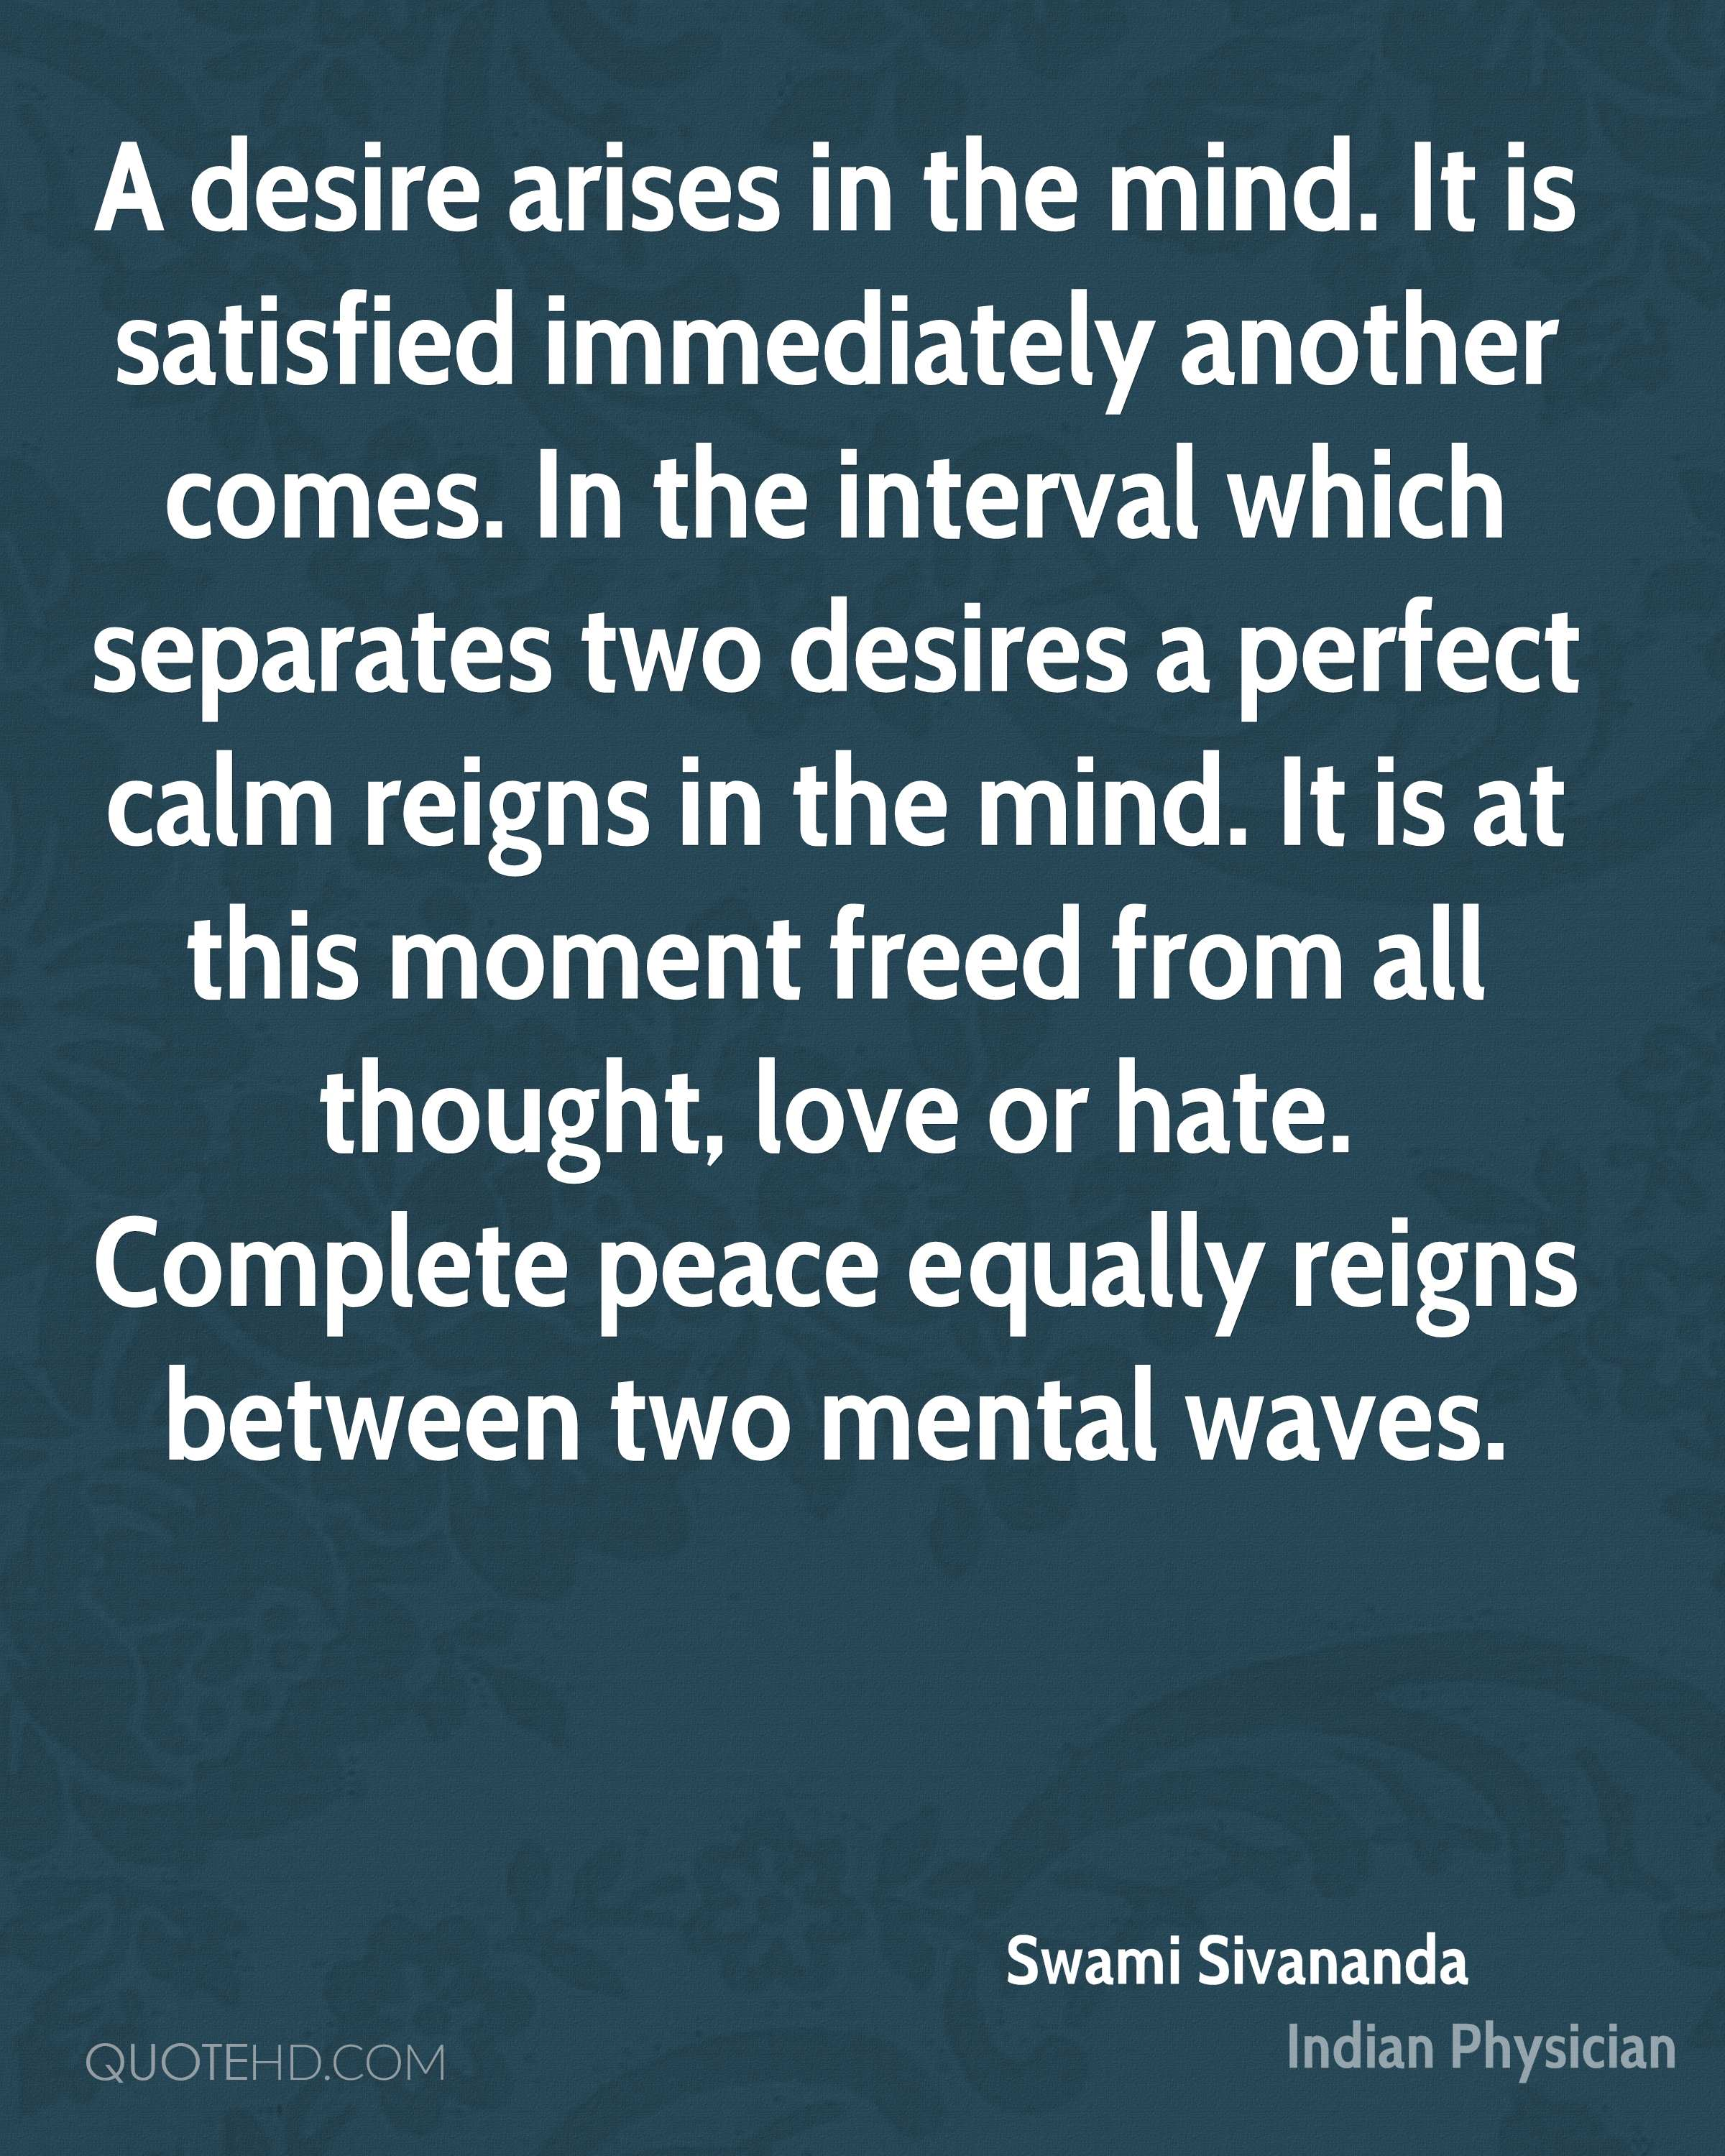 A desire arises in the mind. It is satisfied immediately another comes. In the interval which separates two desires a perfect calm reigns in the mind. It is at this moment freed from all thought, love or hate. Complete peace equally reigns between two mental waves.